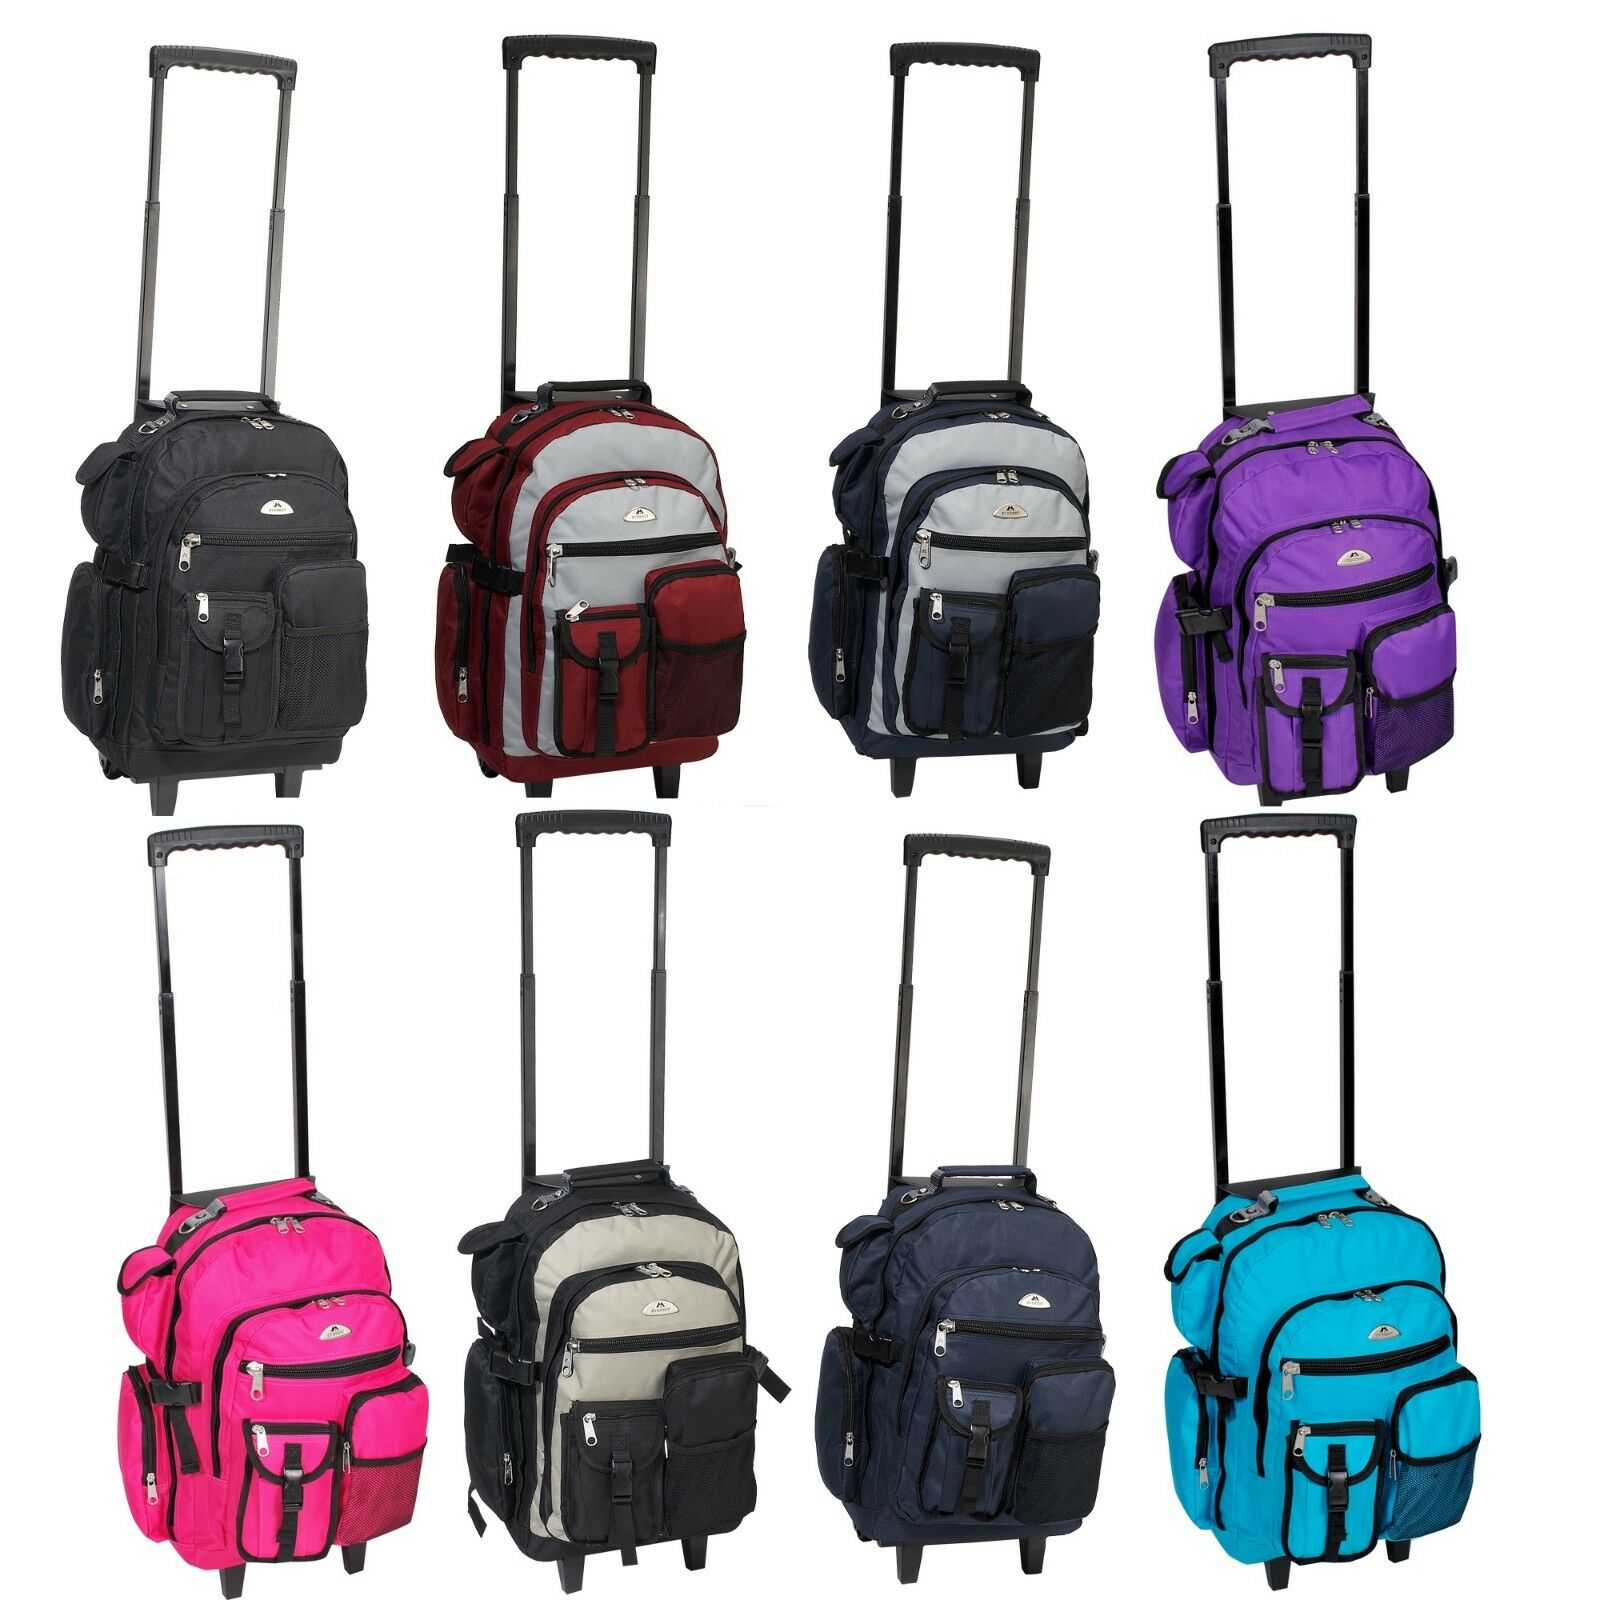 Deluxe Wheeled Rolling 18 Quot Carry On Travel Luggage Travel